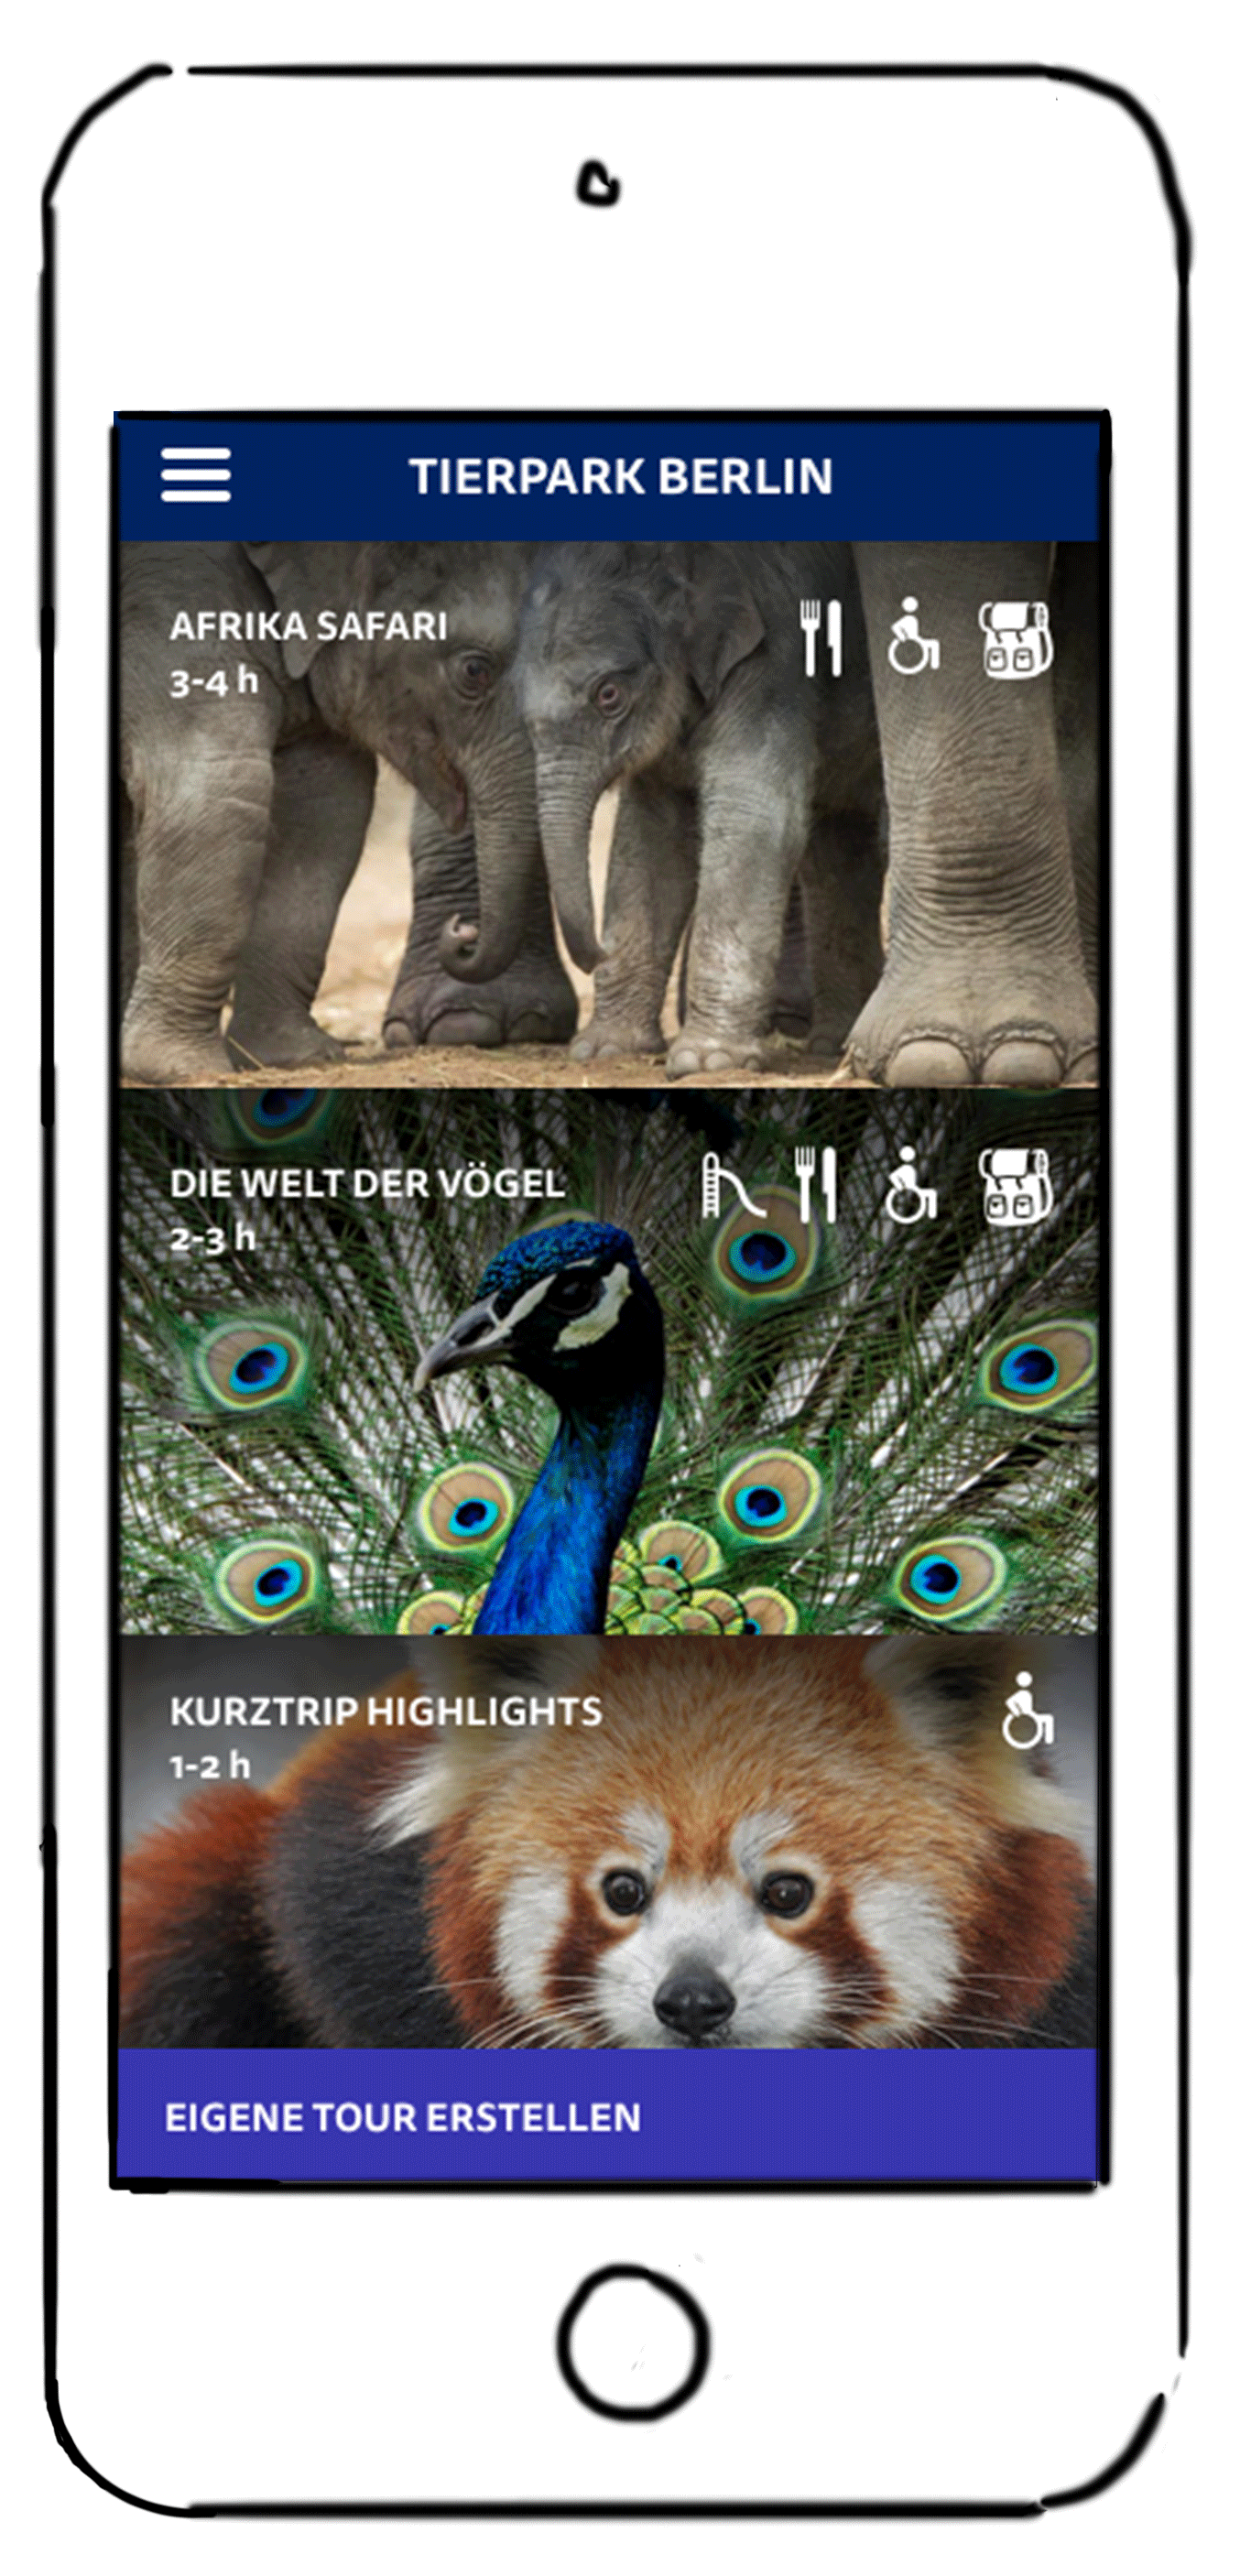 Zoo app  Case study about a mobile guide